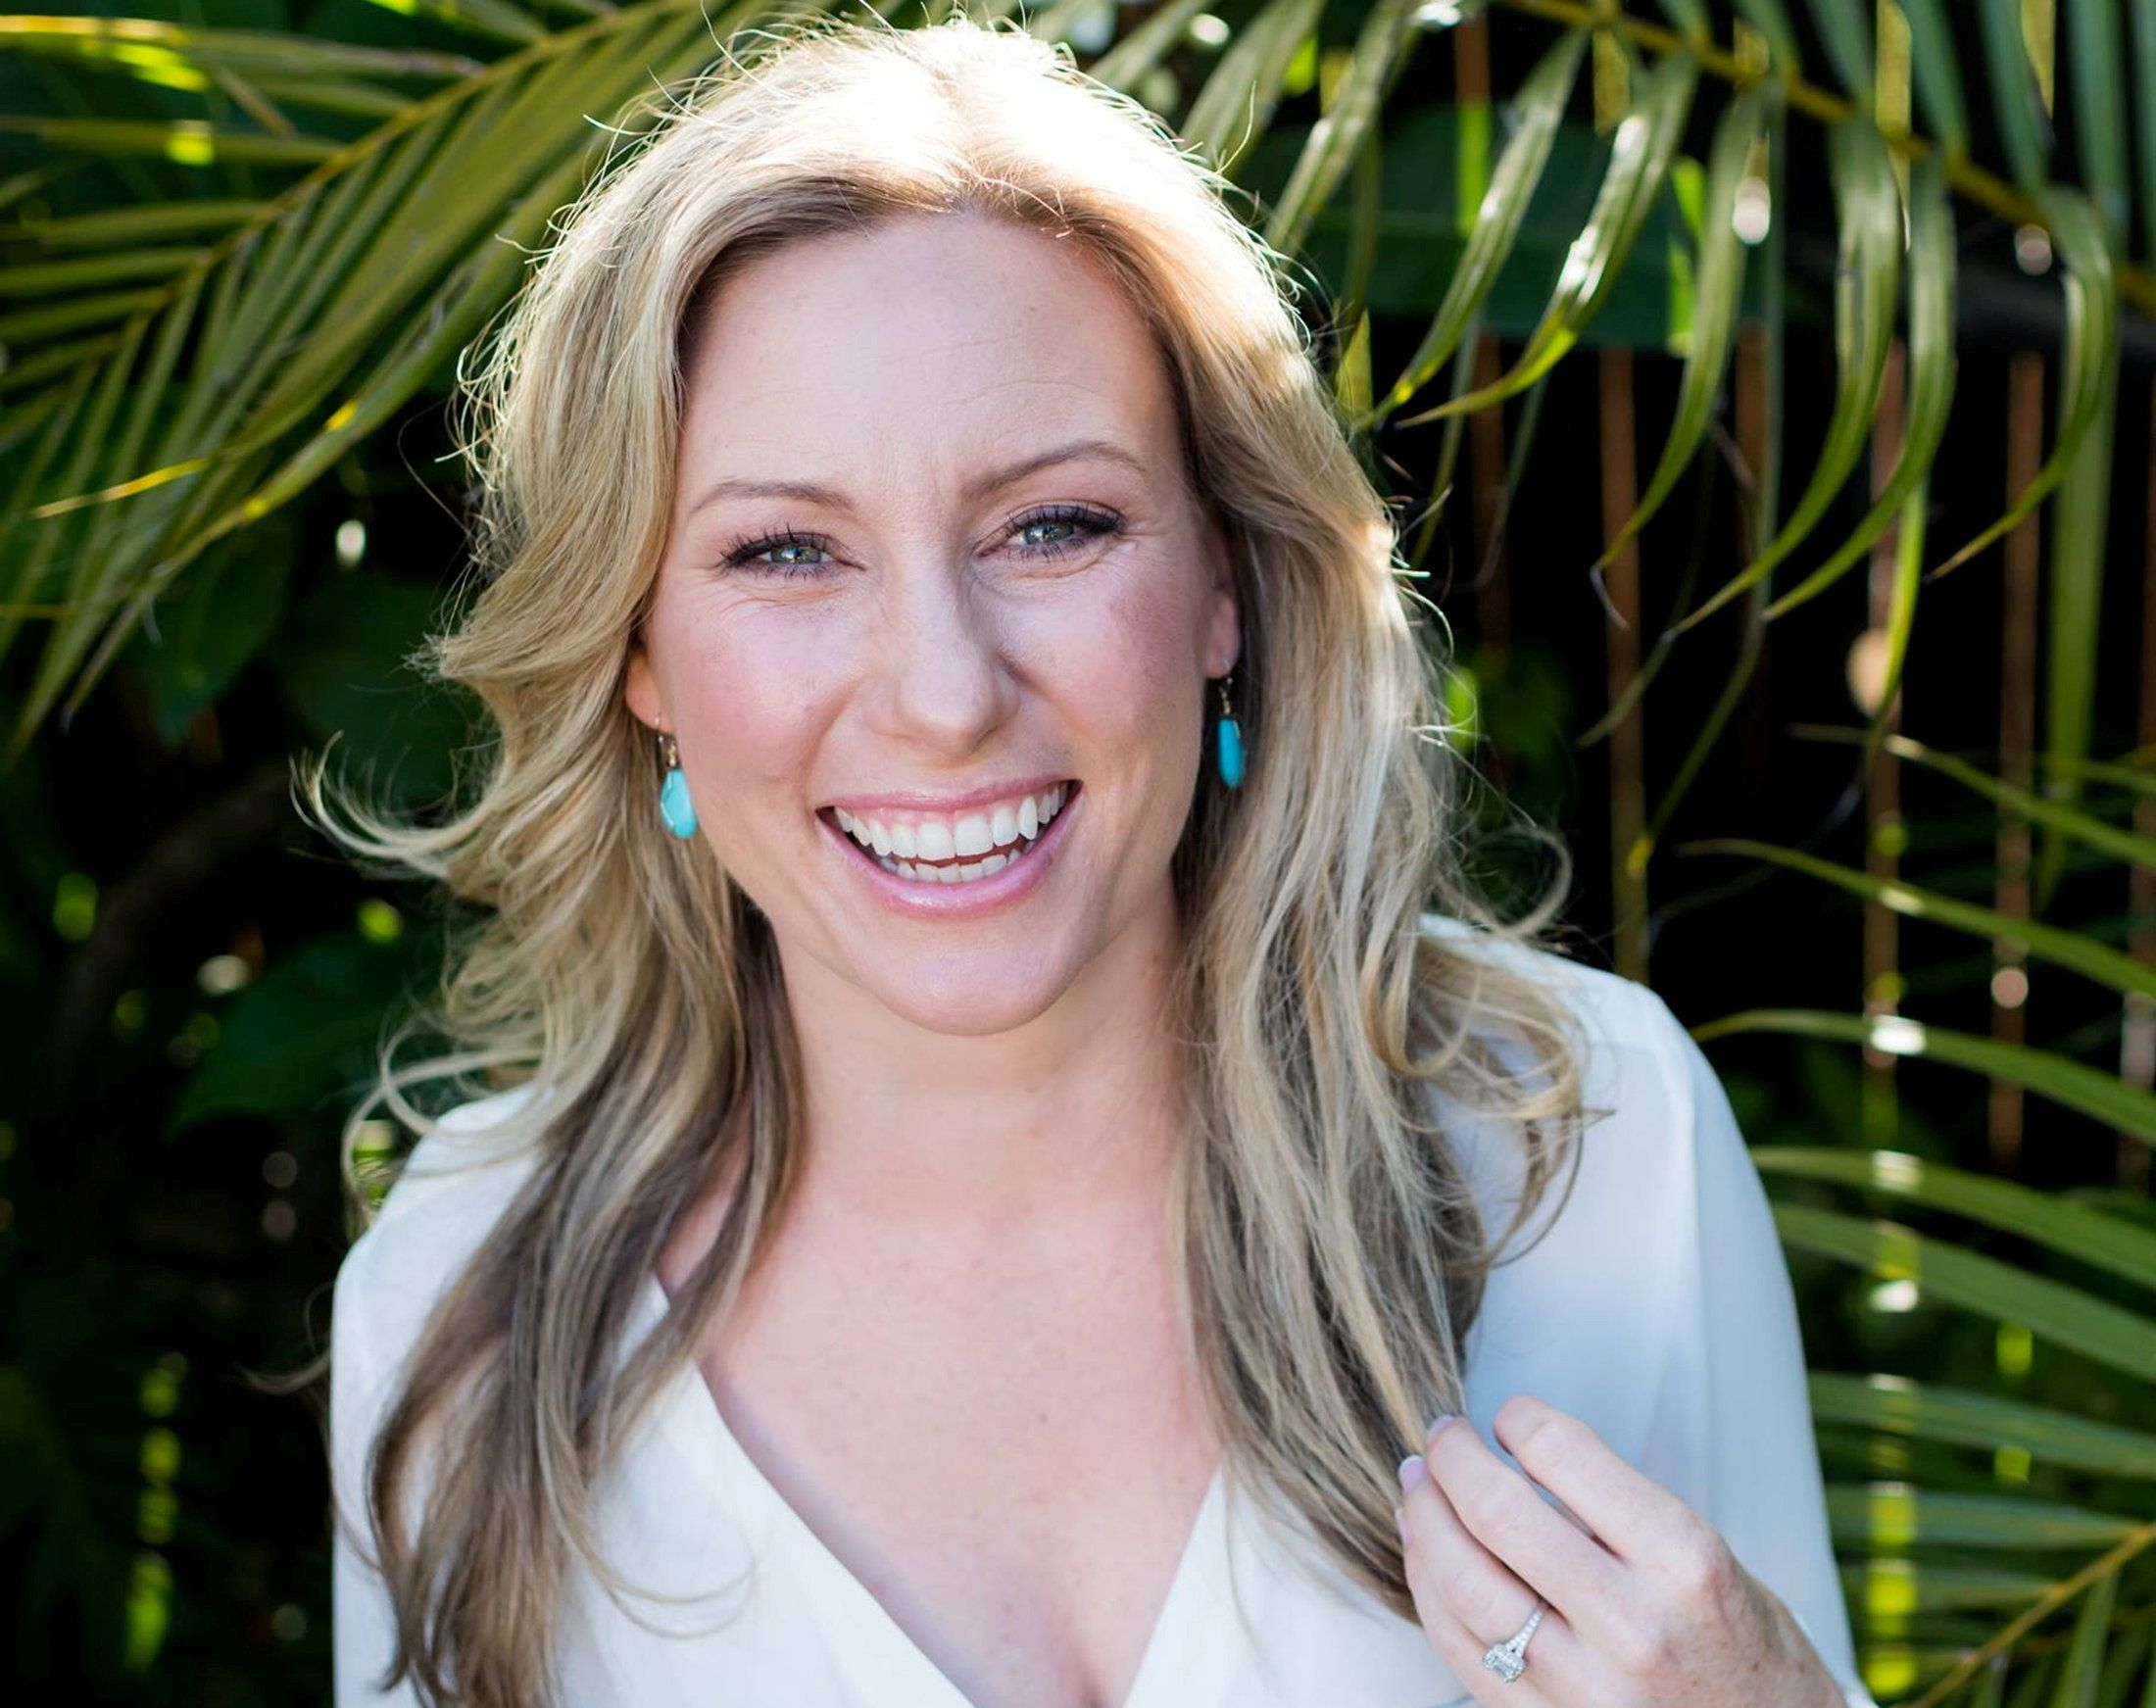 Justine Damond Called 911 To Report Possible Sex Assault Before Cop Killed